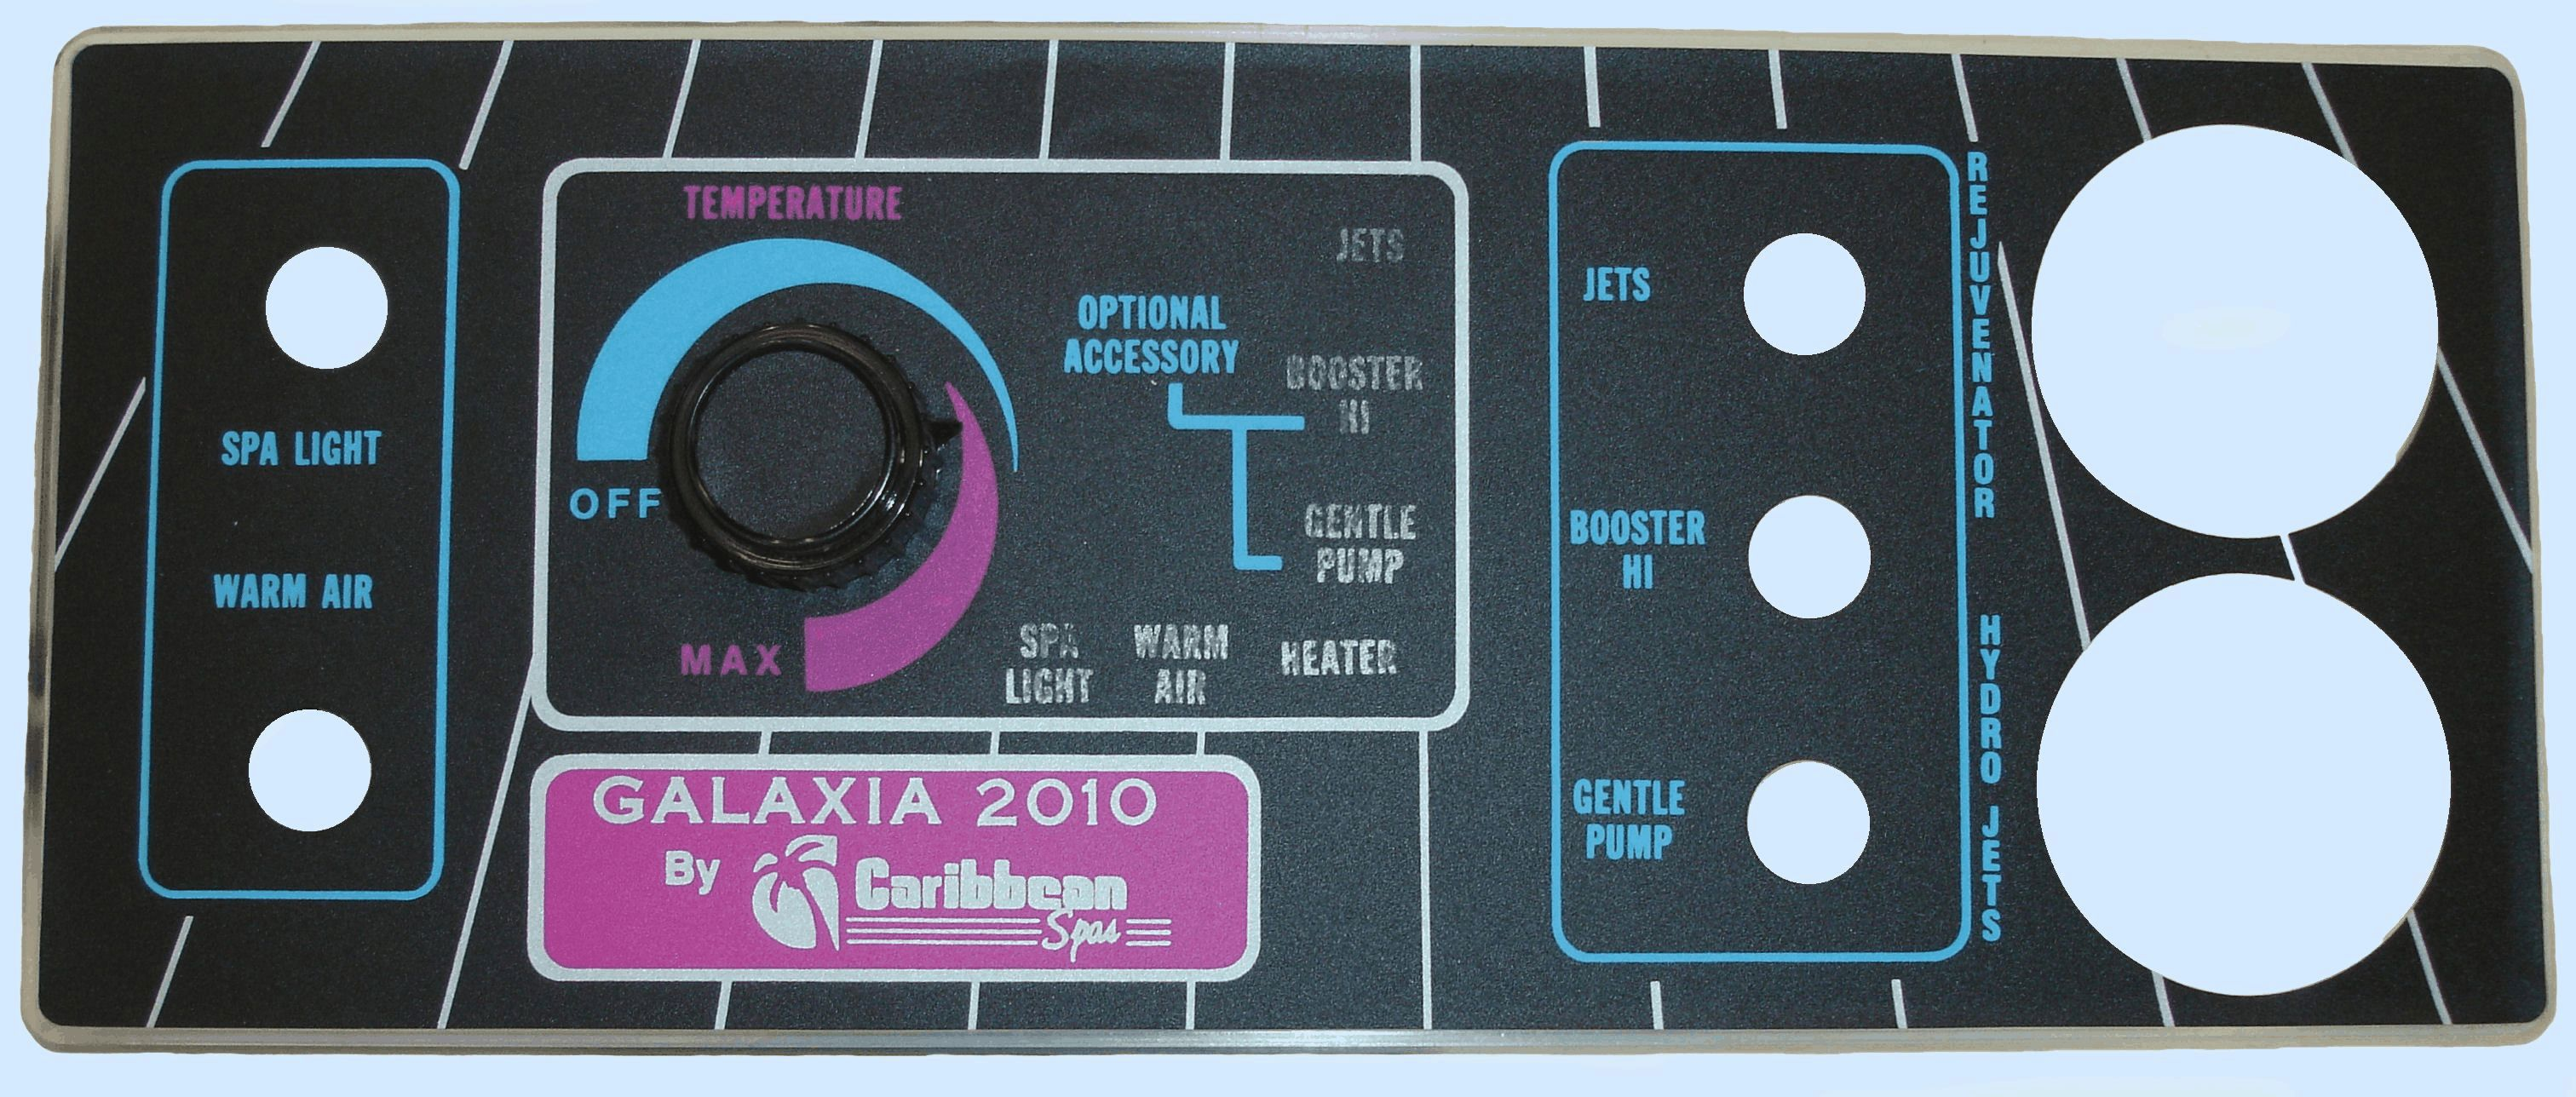 Acu2010 spa topside control hot tub control spa control for Acu salon prices